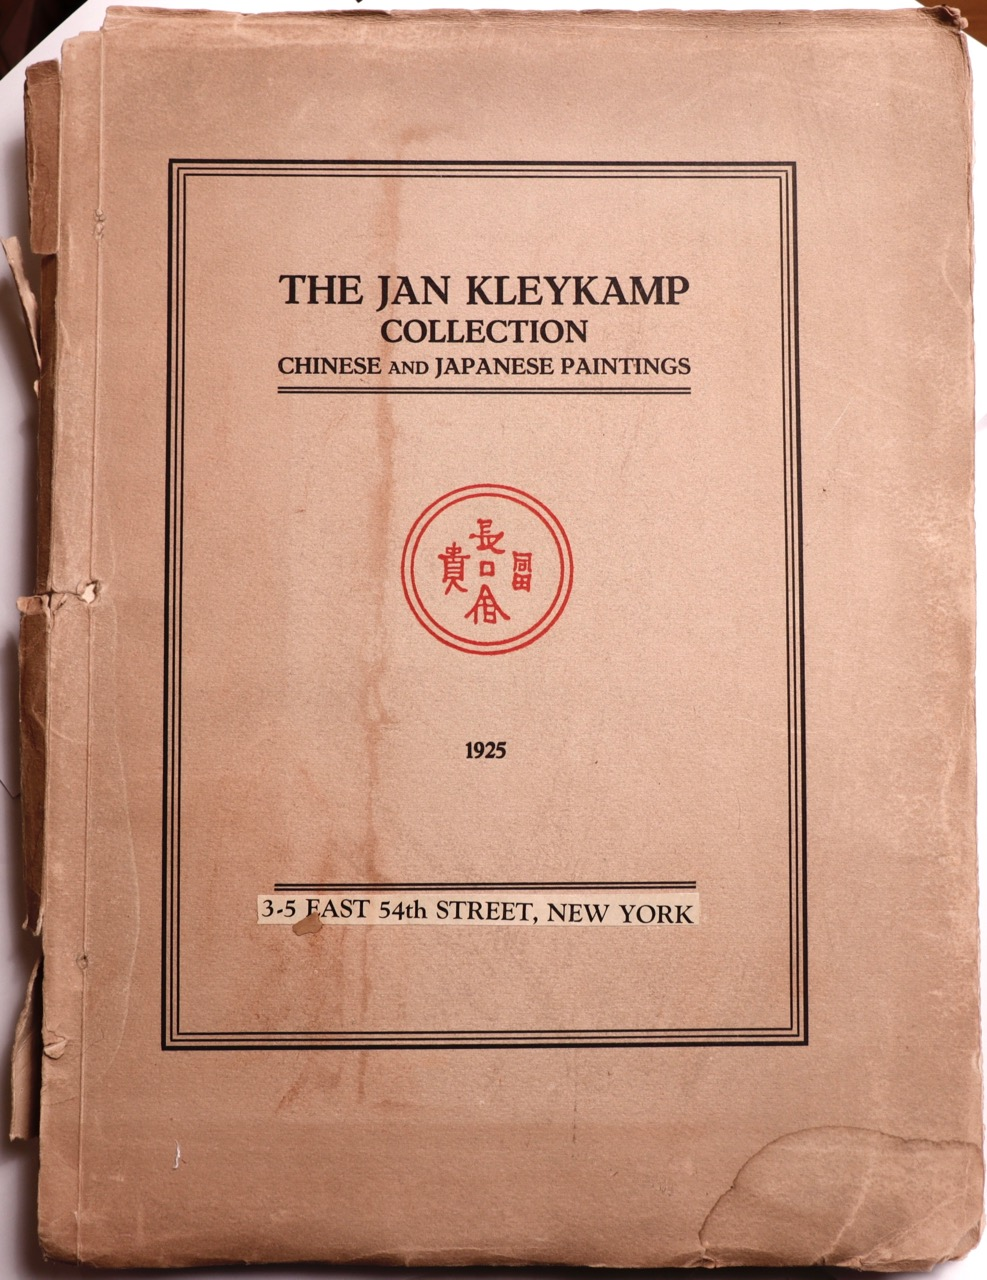 KLEYKAMPHK: Bookshop: The Jan Kleykamp Collection